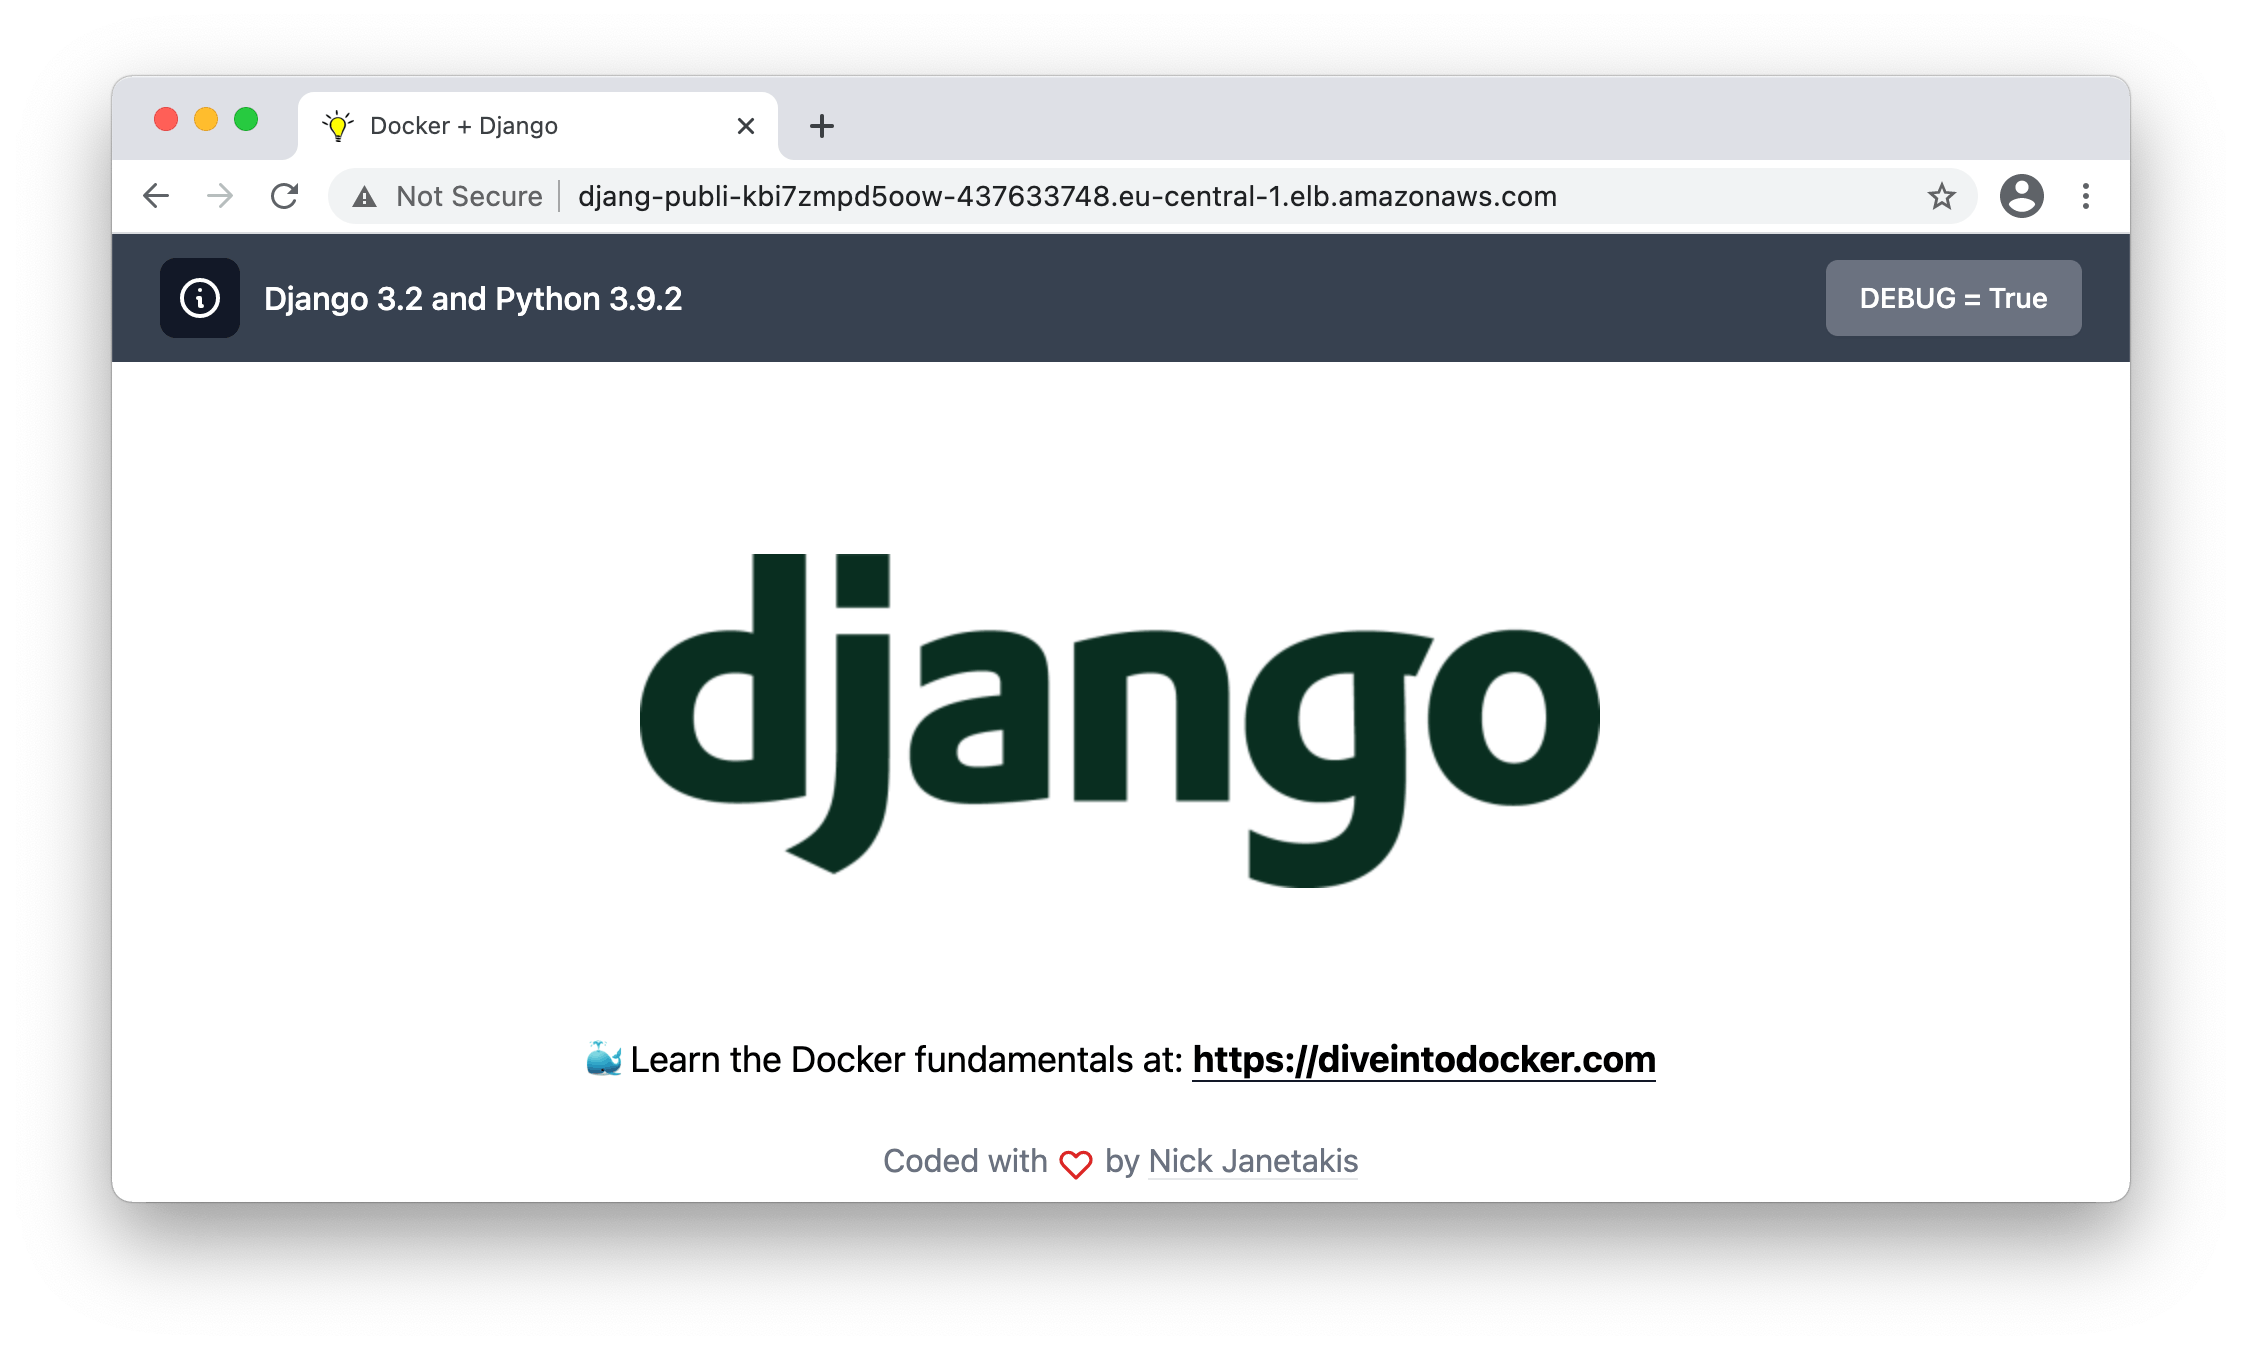 the result will display the example django app